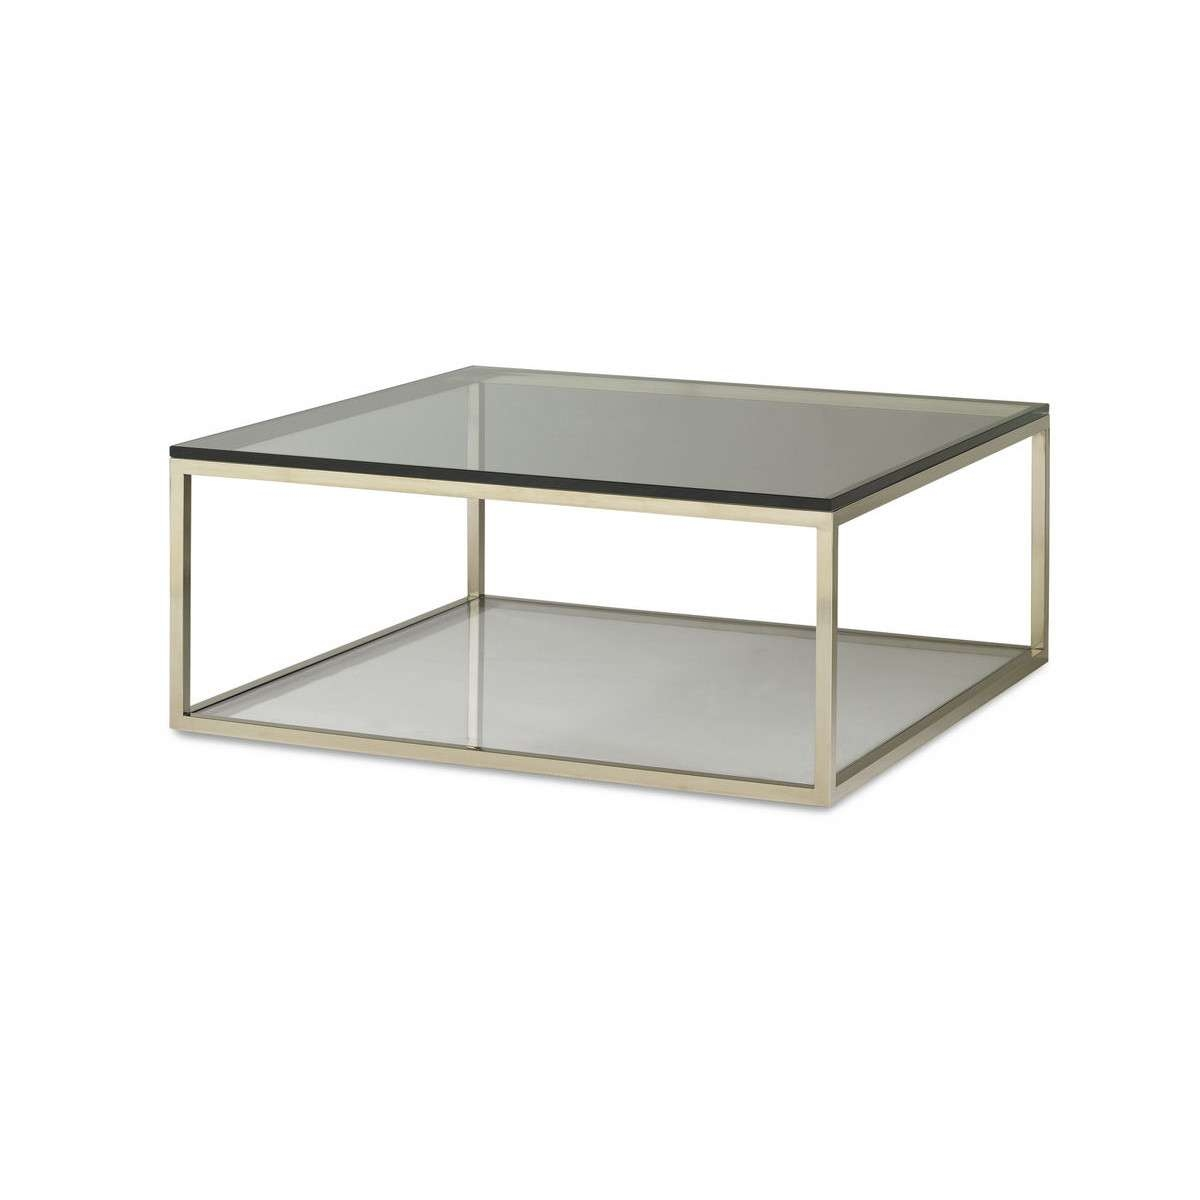 Widely Used Large Square Glass Coffee Tables Throughout Glass Coffee Tables: Outstanding Large Glass Coffee Tables (View 13 of 20)